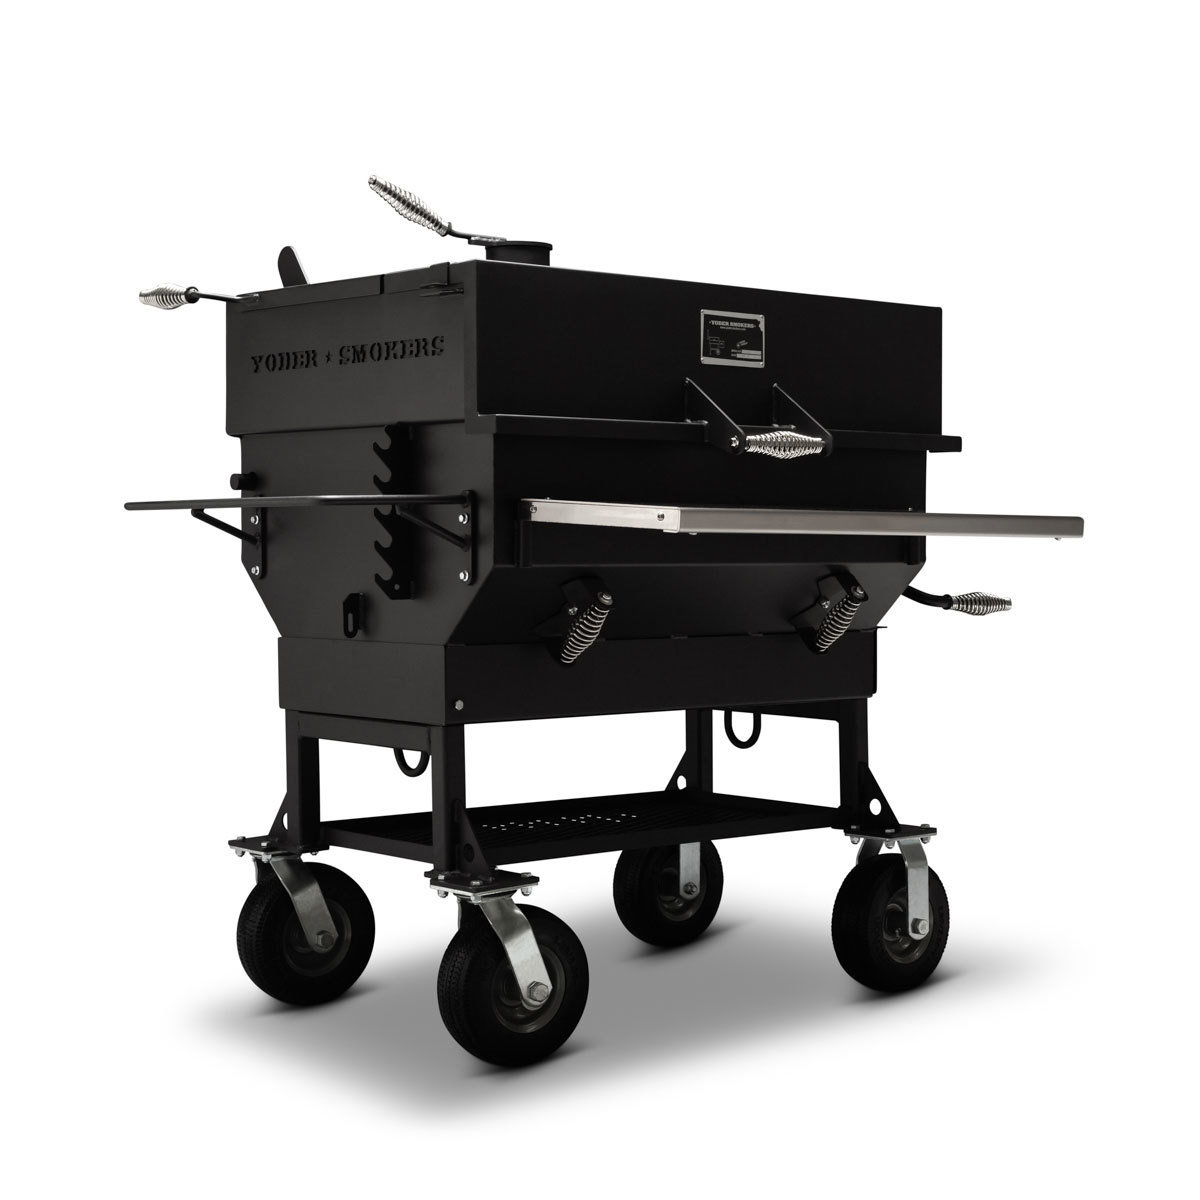 The Yoder Smokers 24